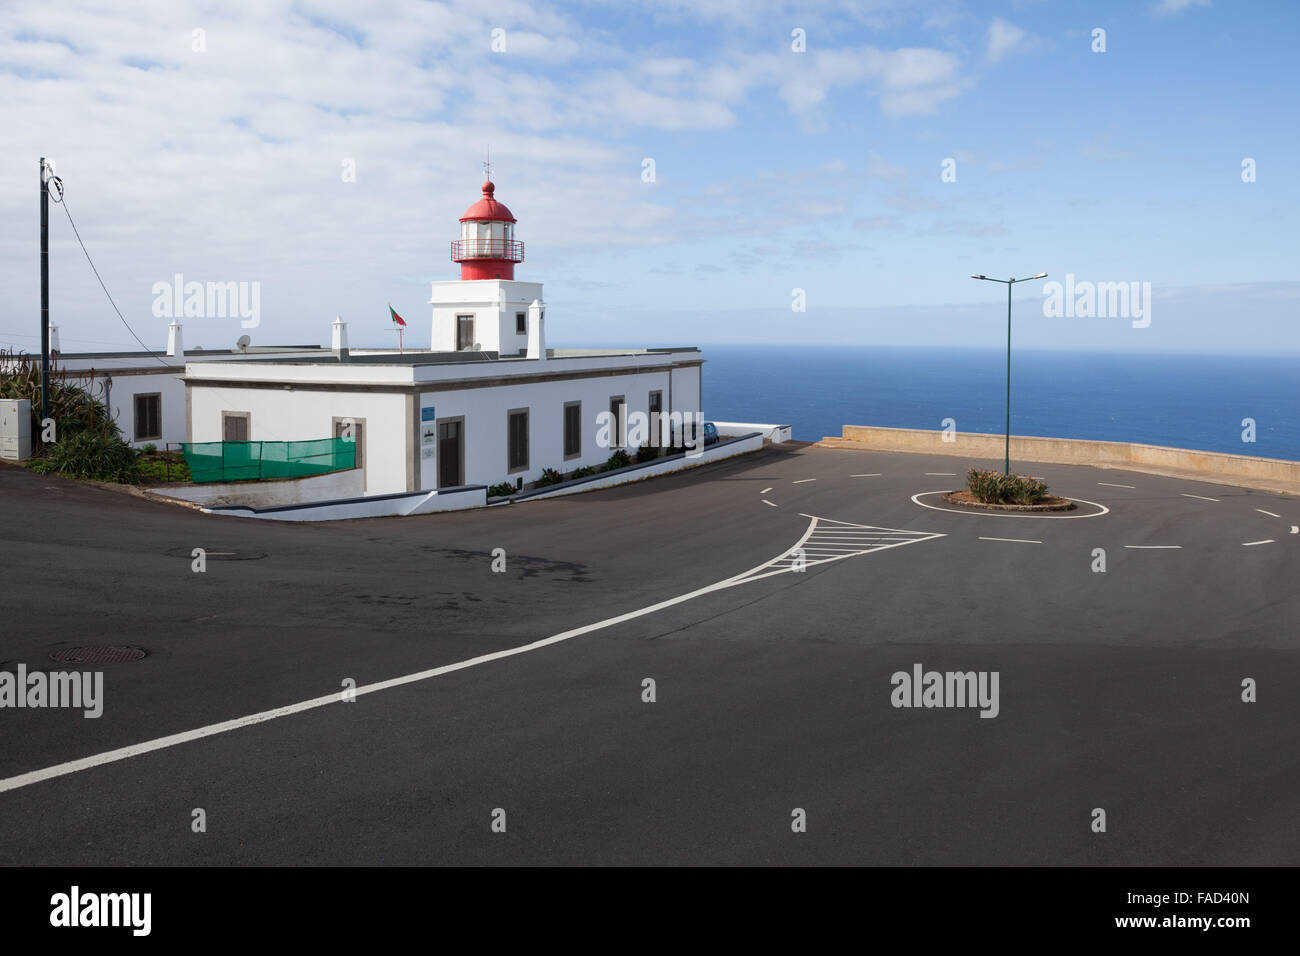 The Ponta do Pargo Lighthouse, located in Ponta Vigia, on the island's westernmost cape. Ponta do Pargo, Madeira - Stock Image